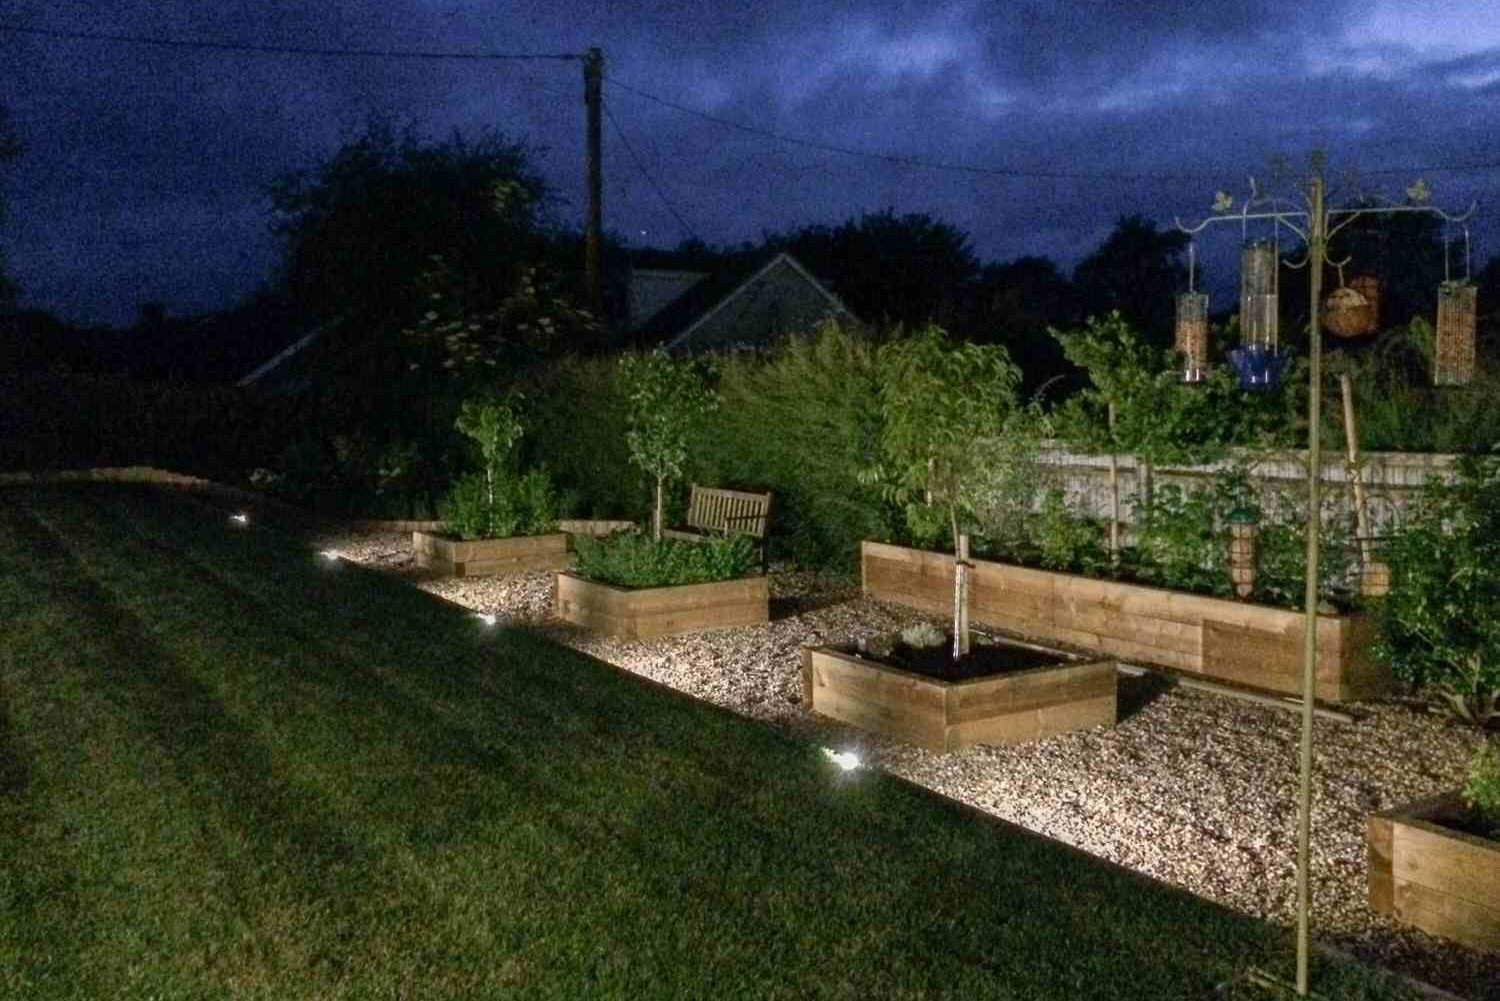 landscaped garden at night